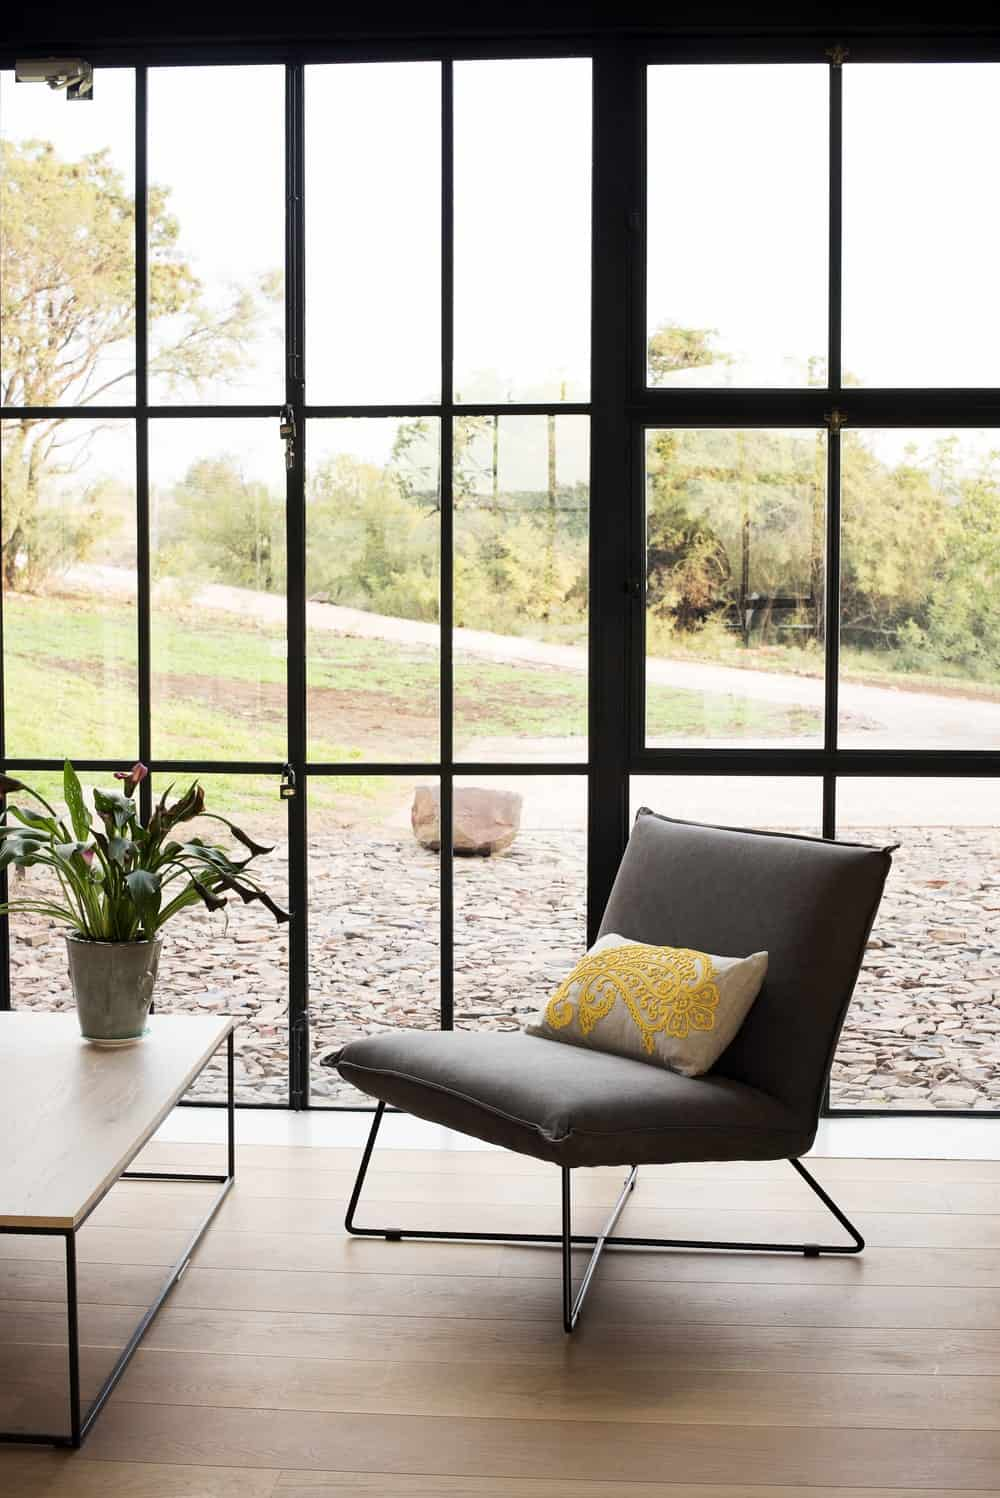 Sitting area overlooking the serene outdoor view in The Conservatory designed by Nadine Engelbrecht.